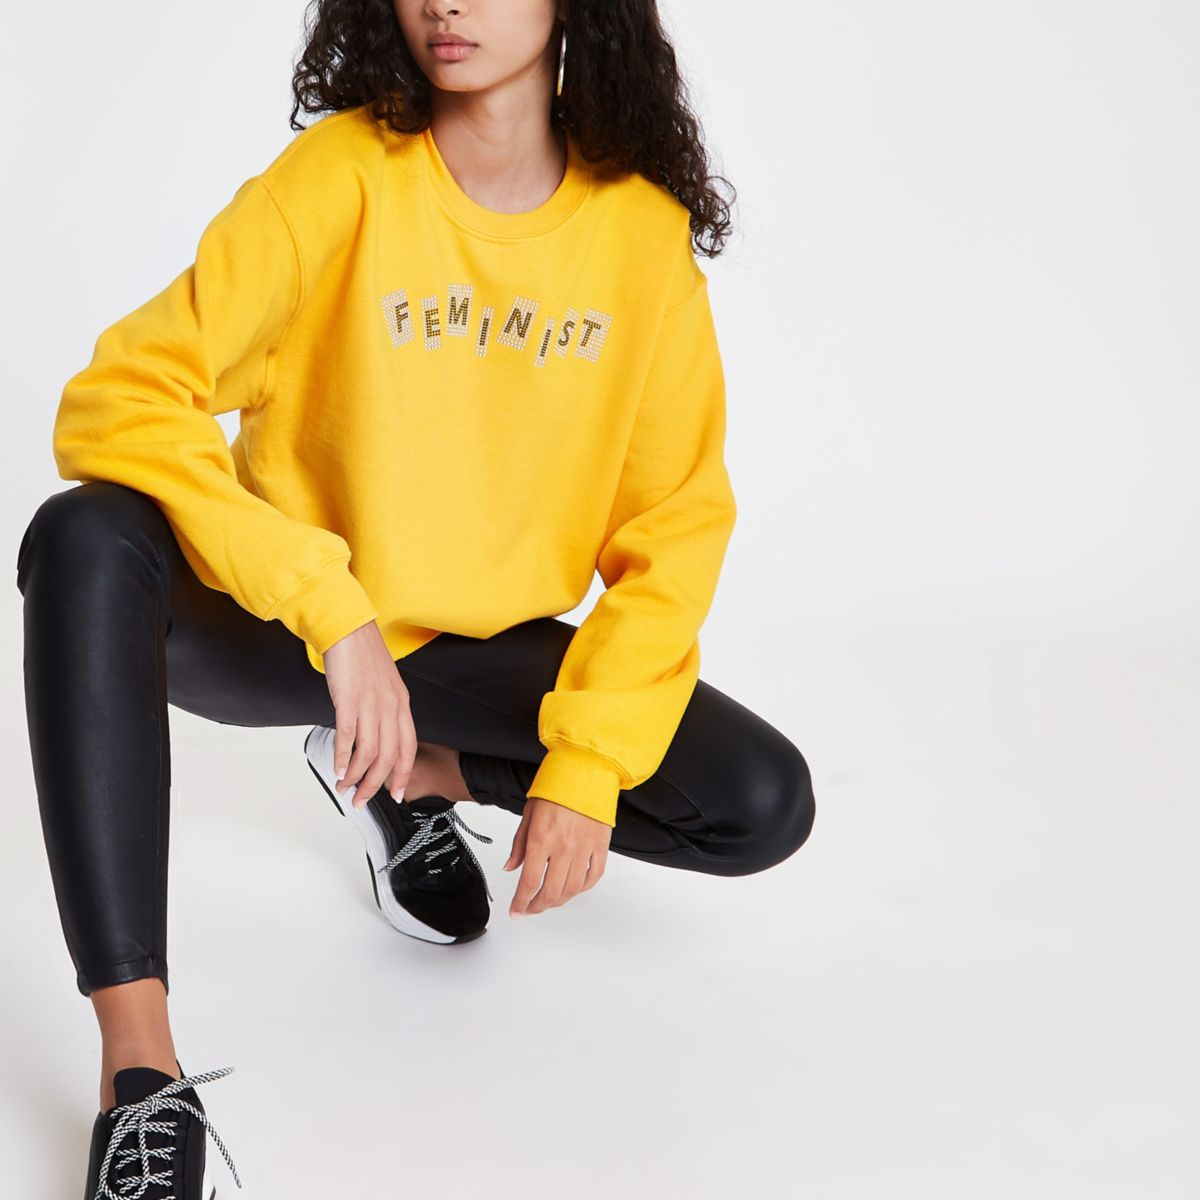 Yellow 'feminist' cropped sweatshirt